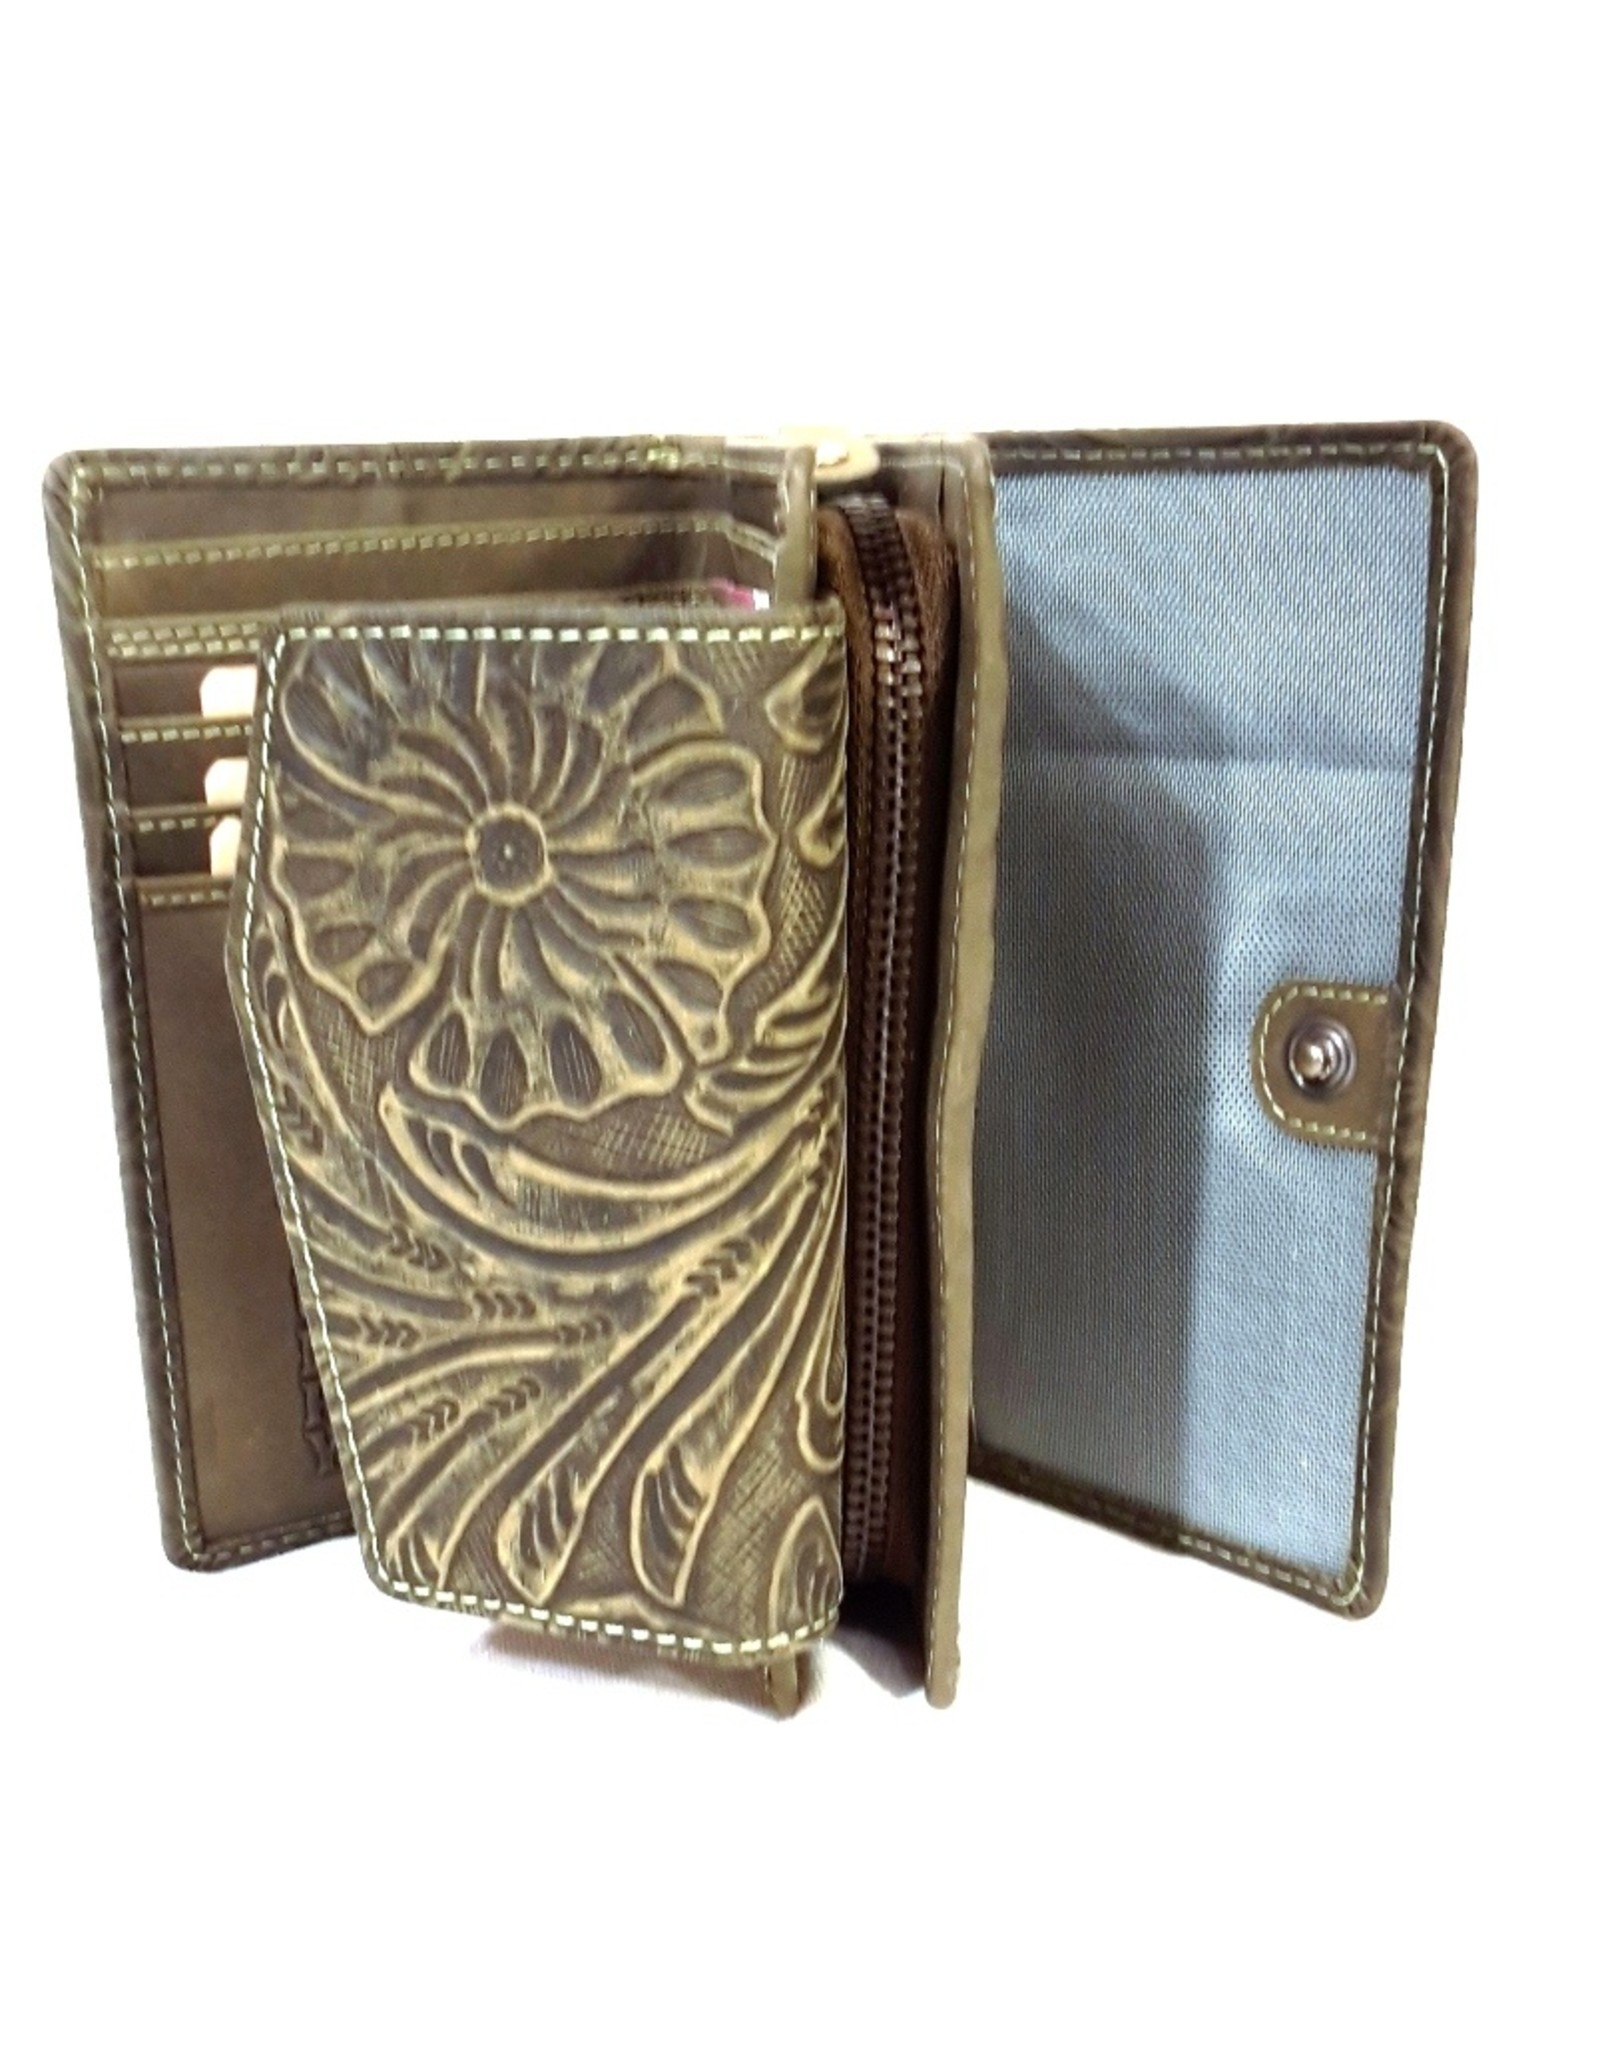 HillBurry Leather Wallets -  HillBurry leather wallet with pressed floral pattern green